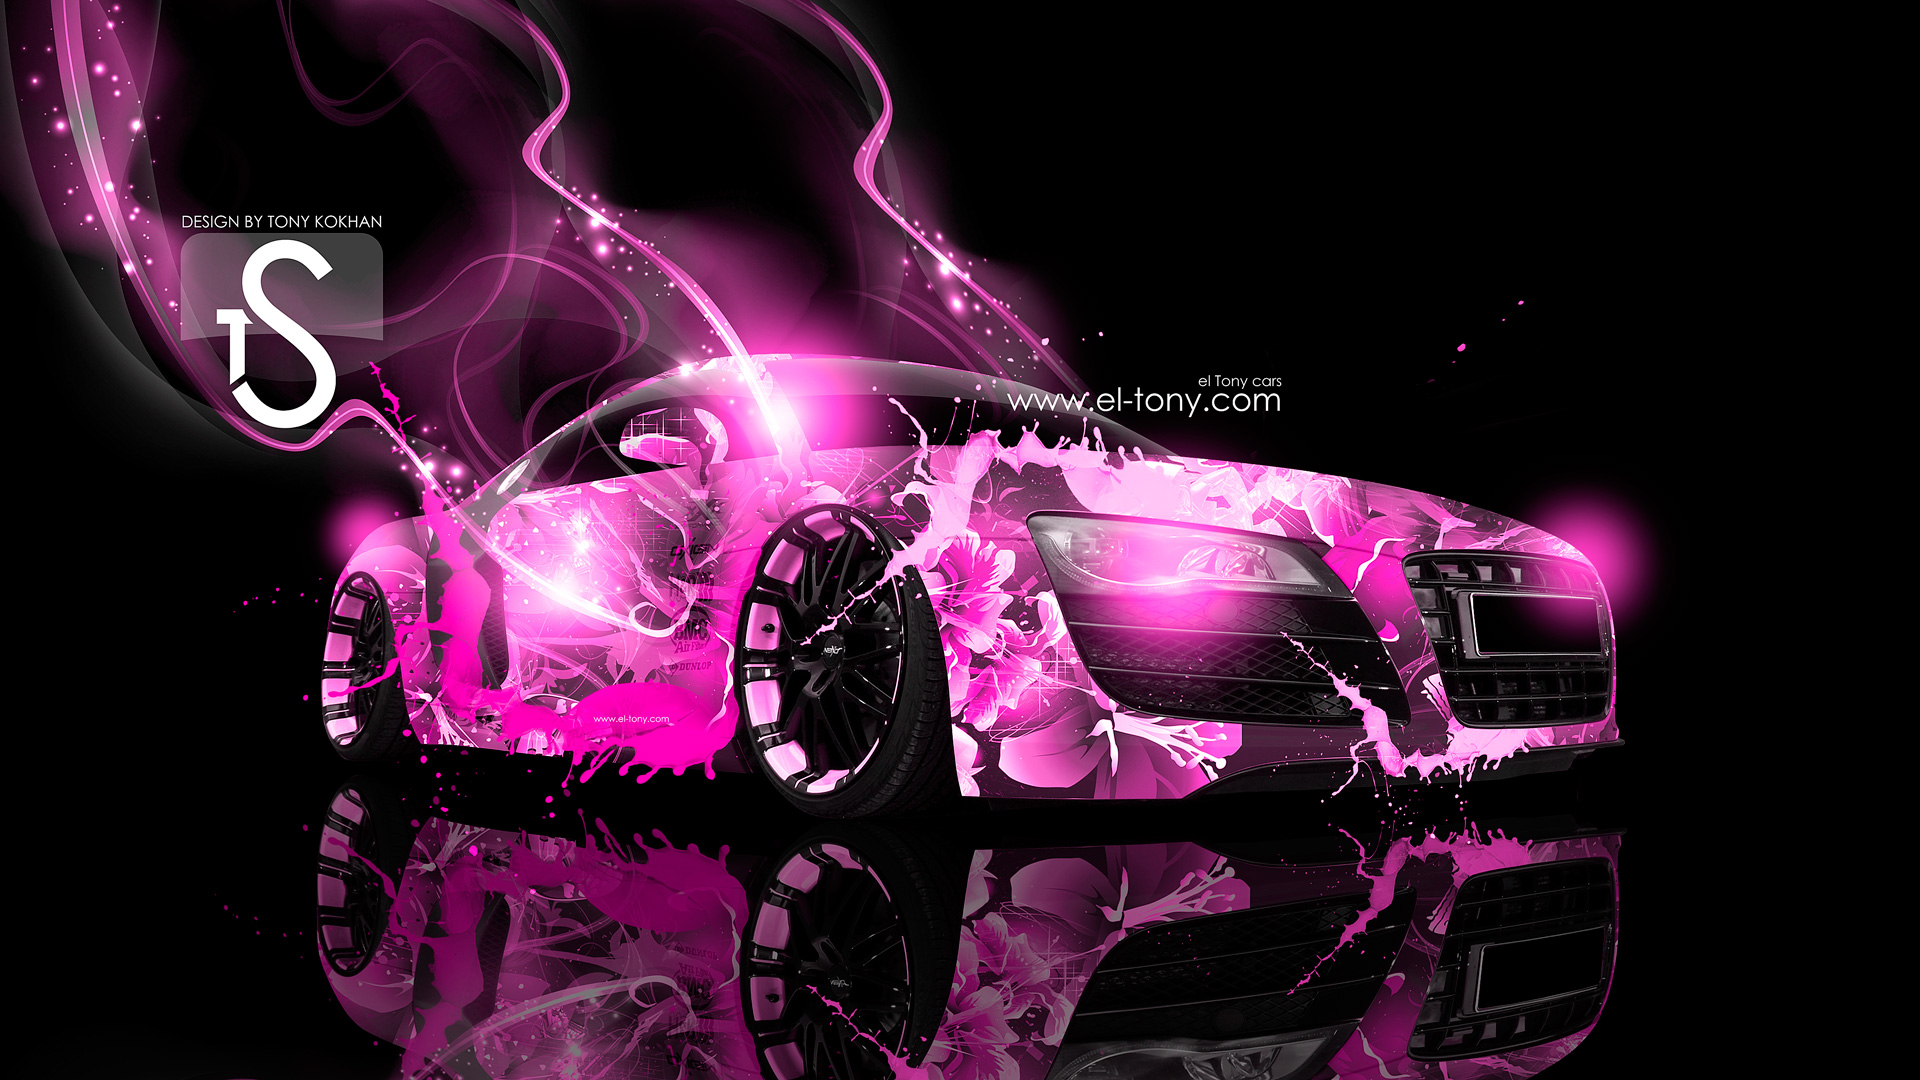 Beau Audi R8 Super Abstract Car 2013 | El Tony